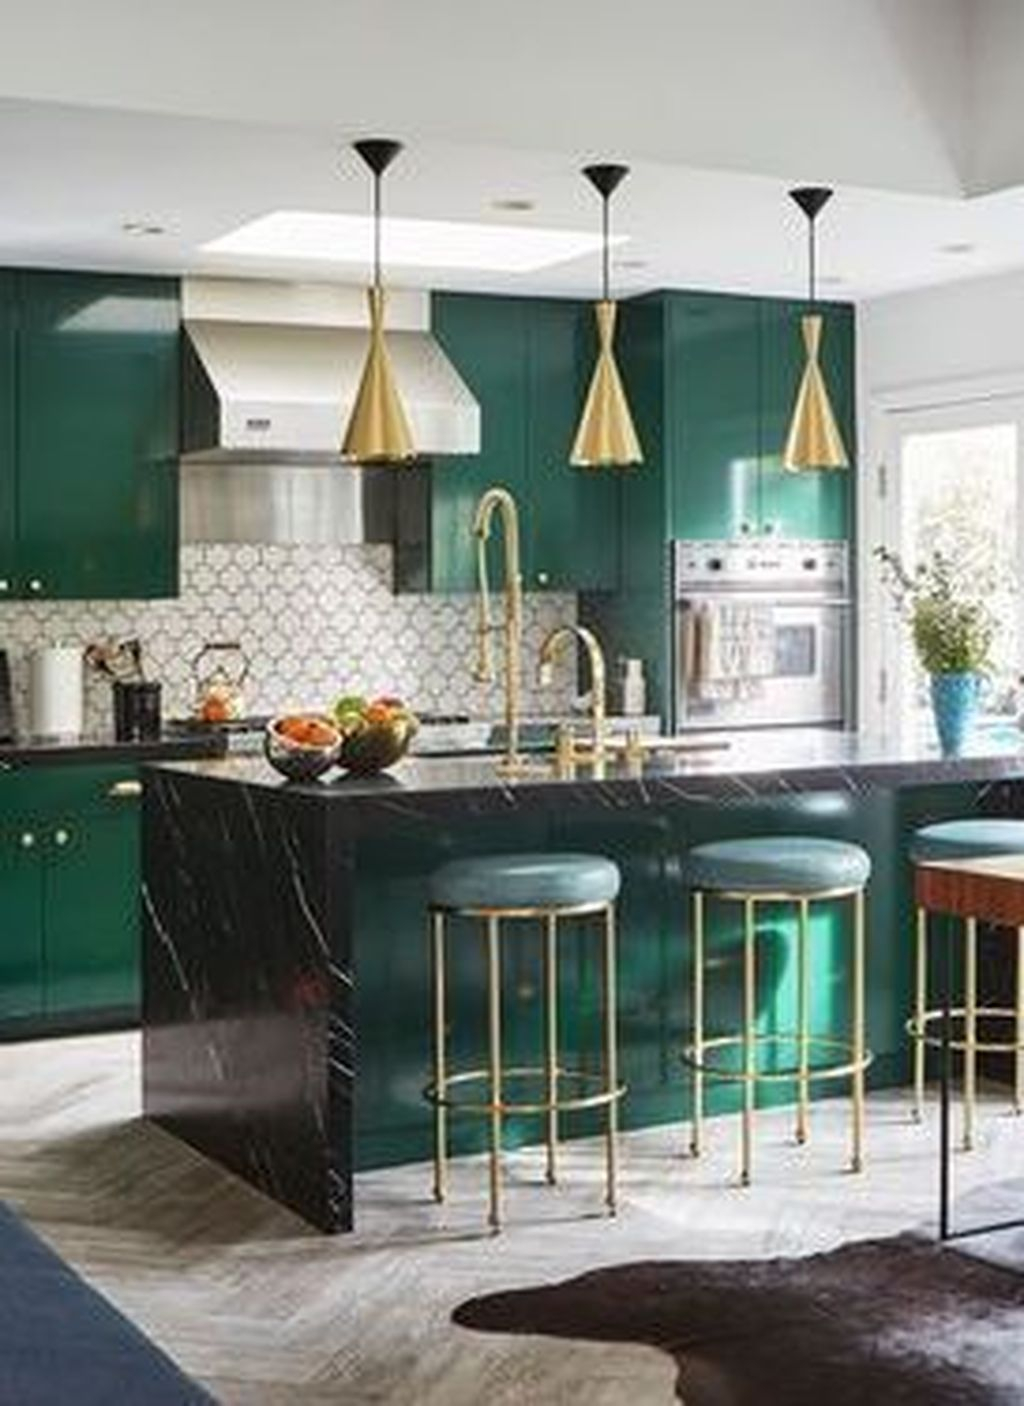 Modern Black Kitchens Design Ideas For Bachelors Pad To Try Asap 32